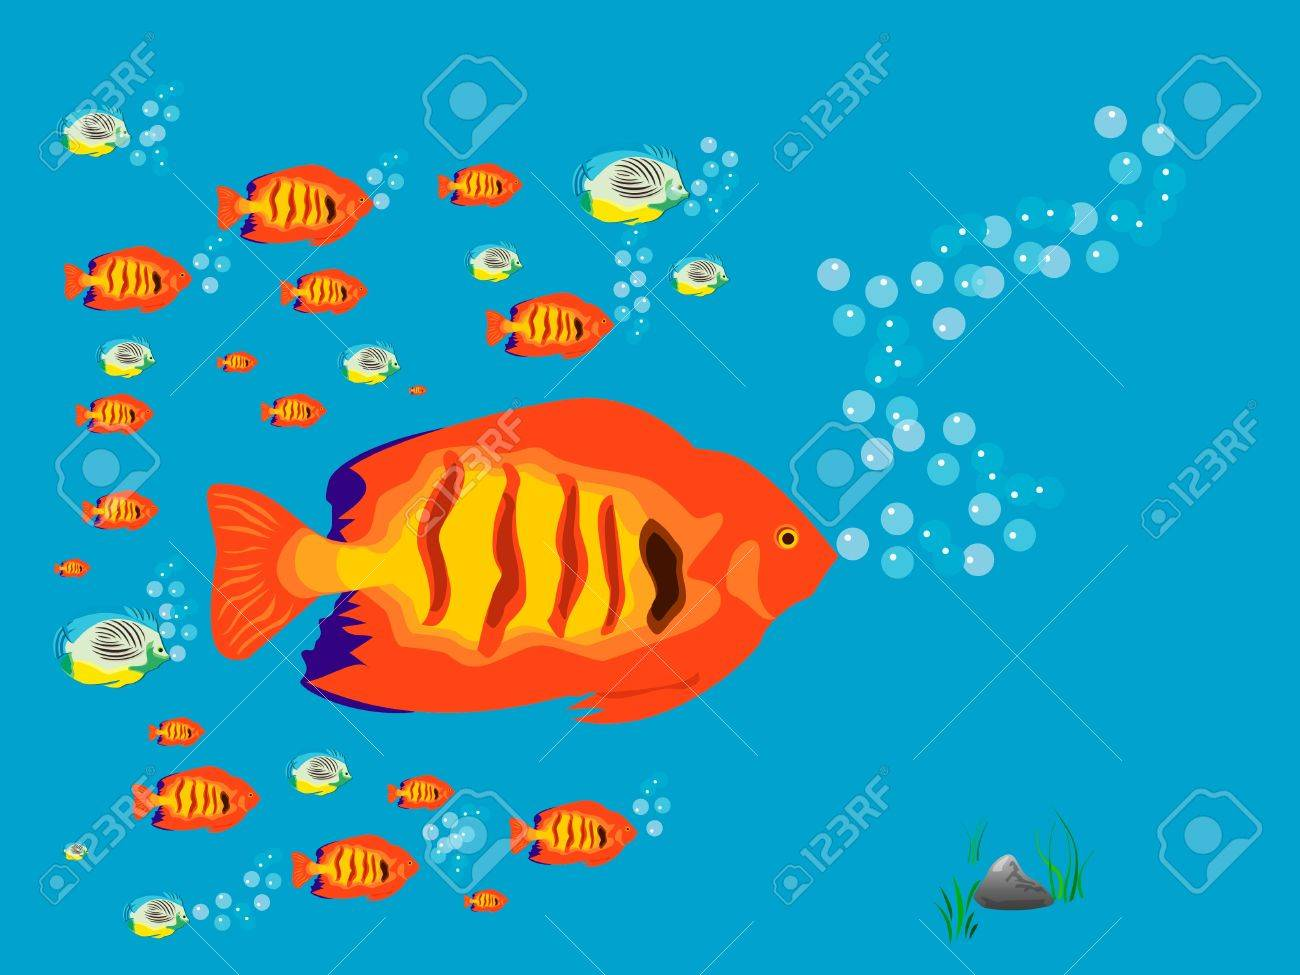 Fish Stock Vector - 12232168